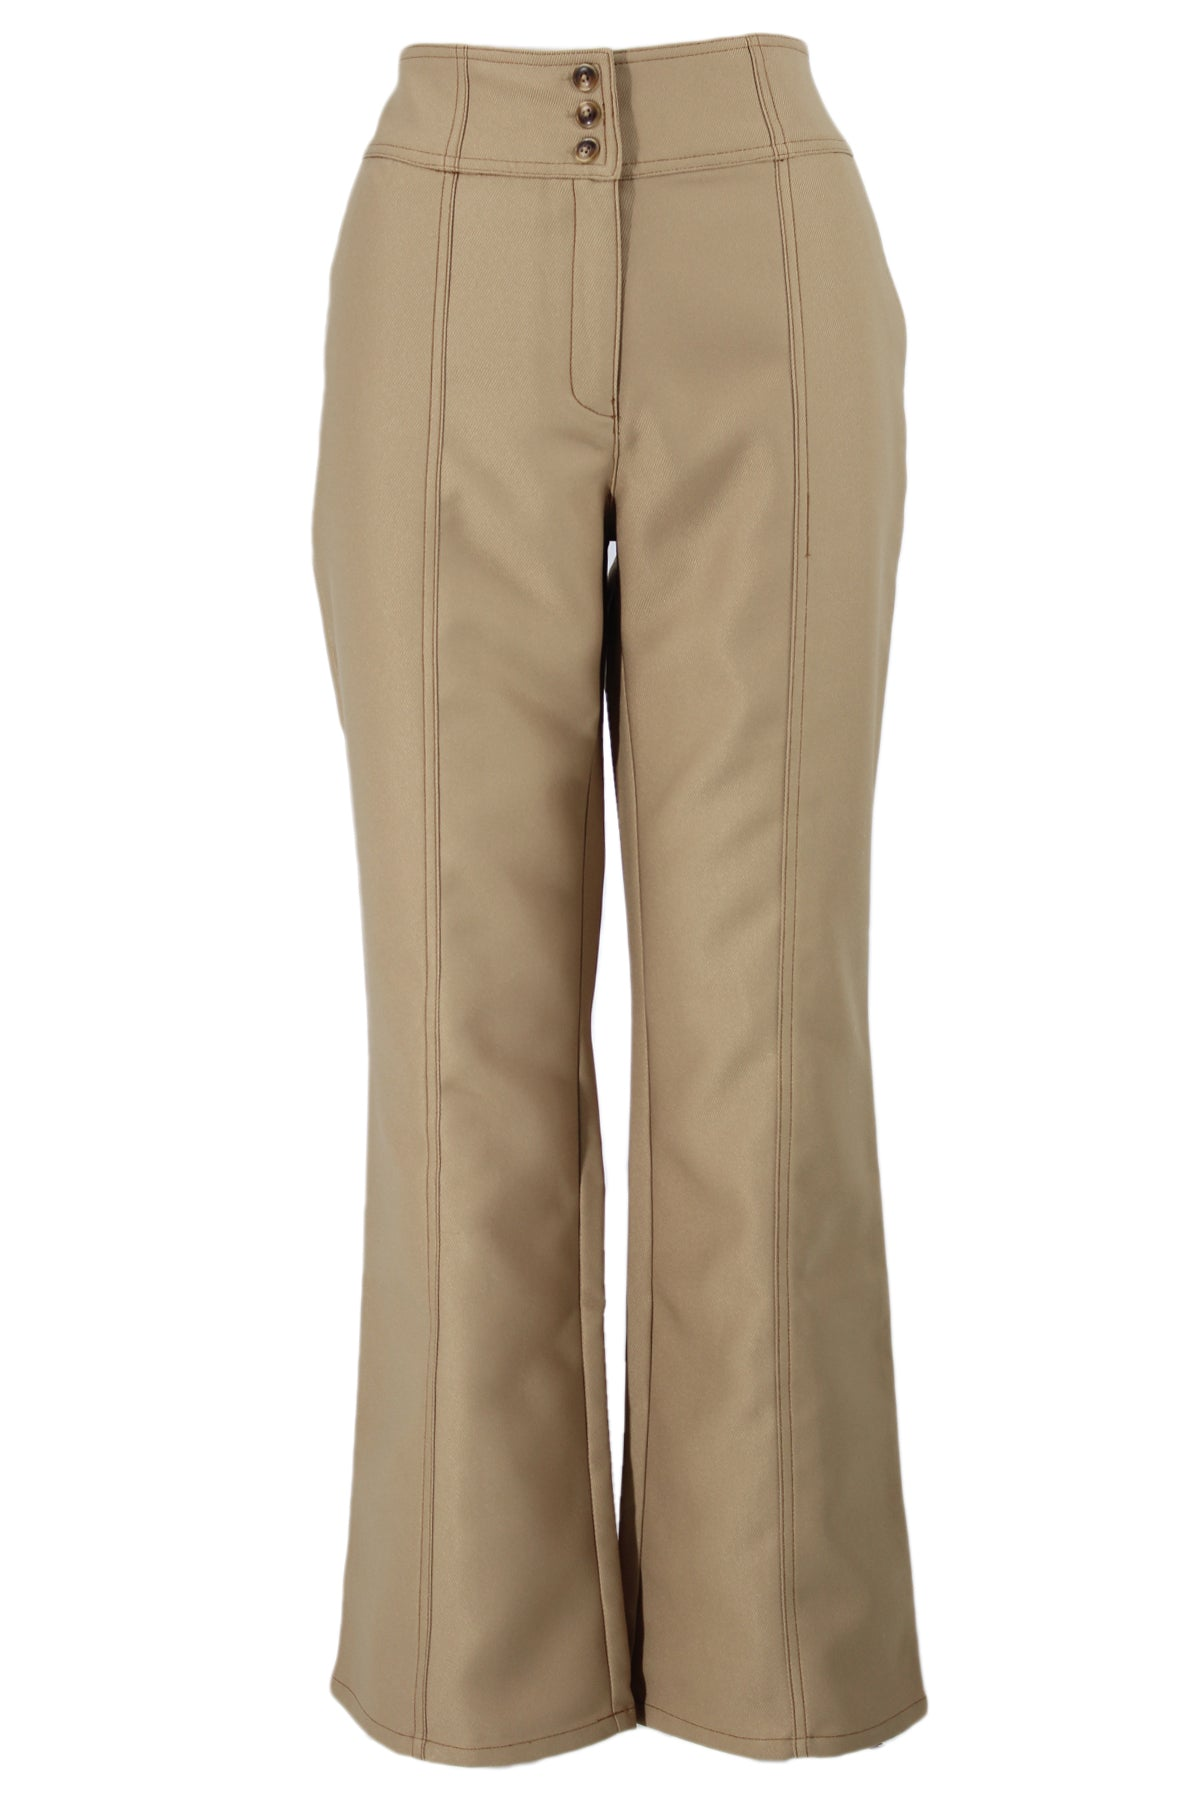 viden sand tone high waisted pants. features sand tone exterior, brown contrast stitching, exterior pockets, wide legs and both exterior tortoise shell button closures and a concealed zipper closure.